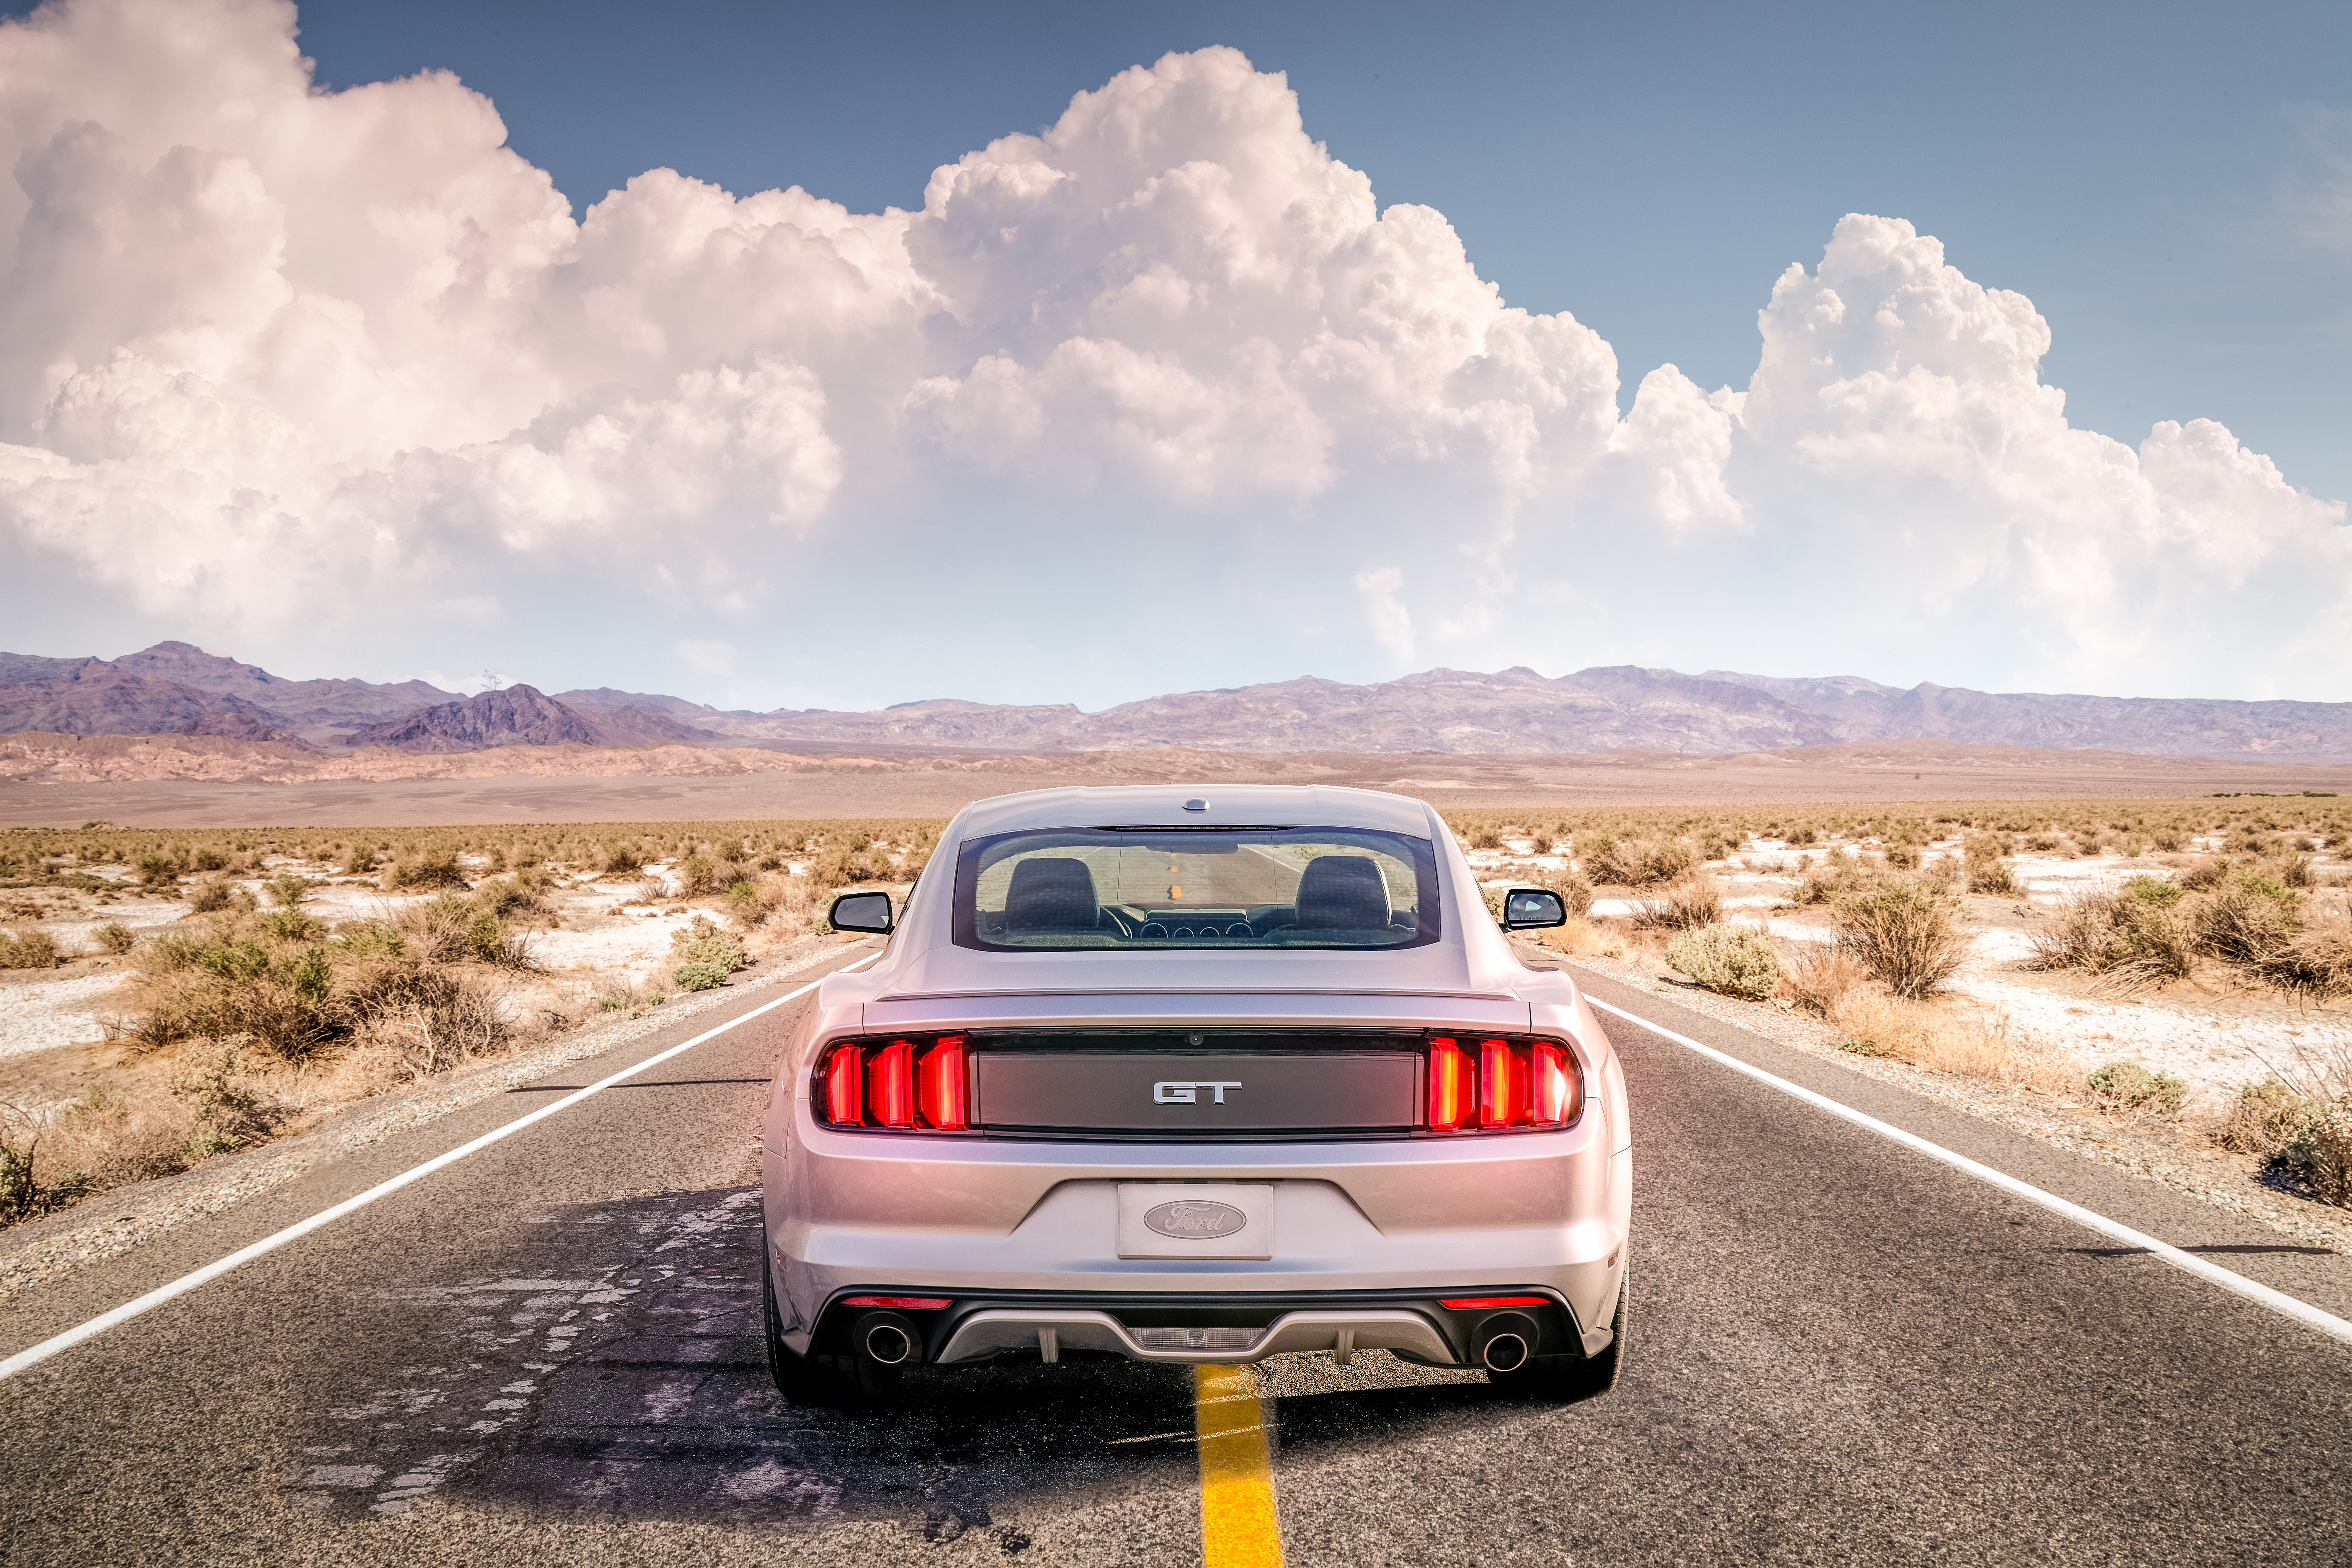 53528 download wallpaper Clouds, Mustang, Cars, Road, Ford Mustang, Mustang Gt screensavers and pictures for free